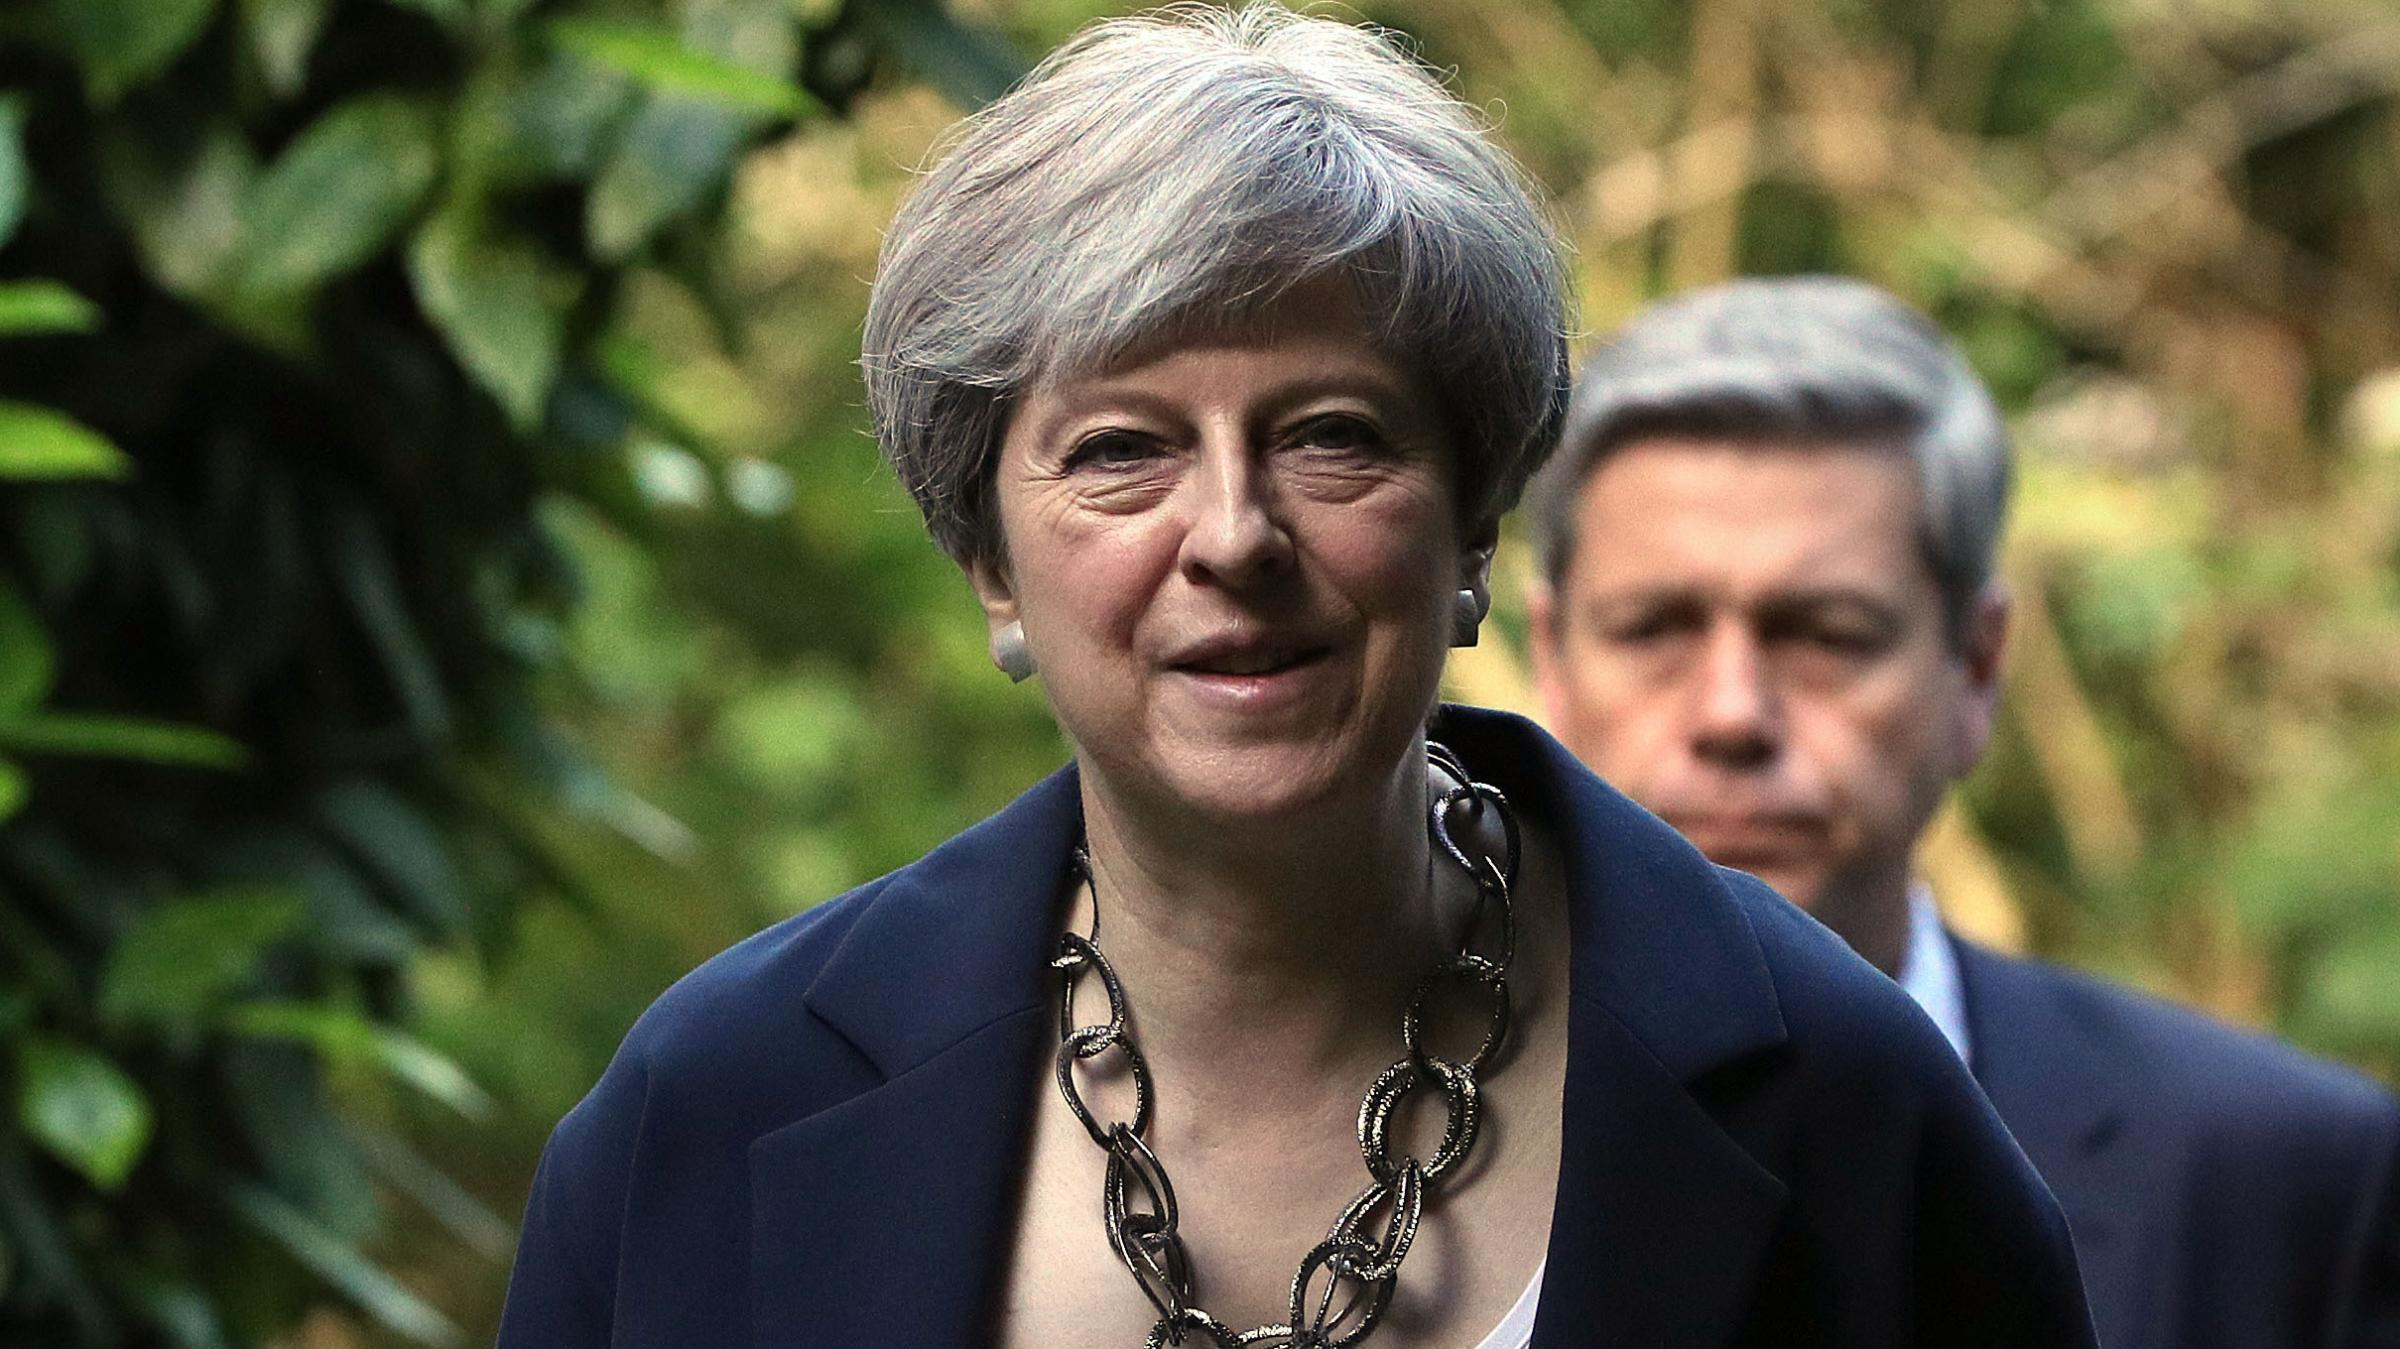 British PM says she takes responsibility for election result